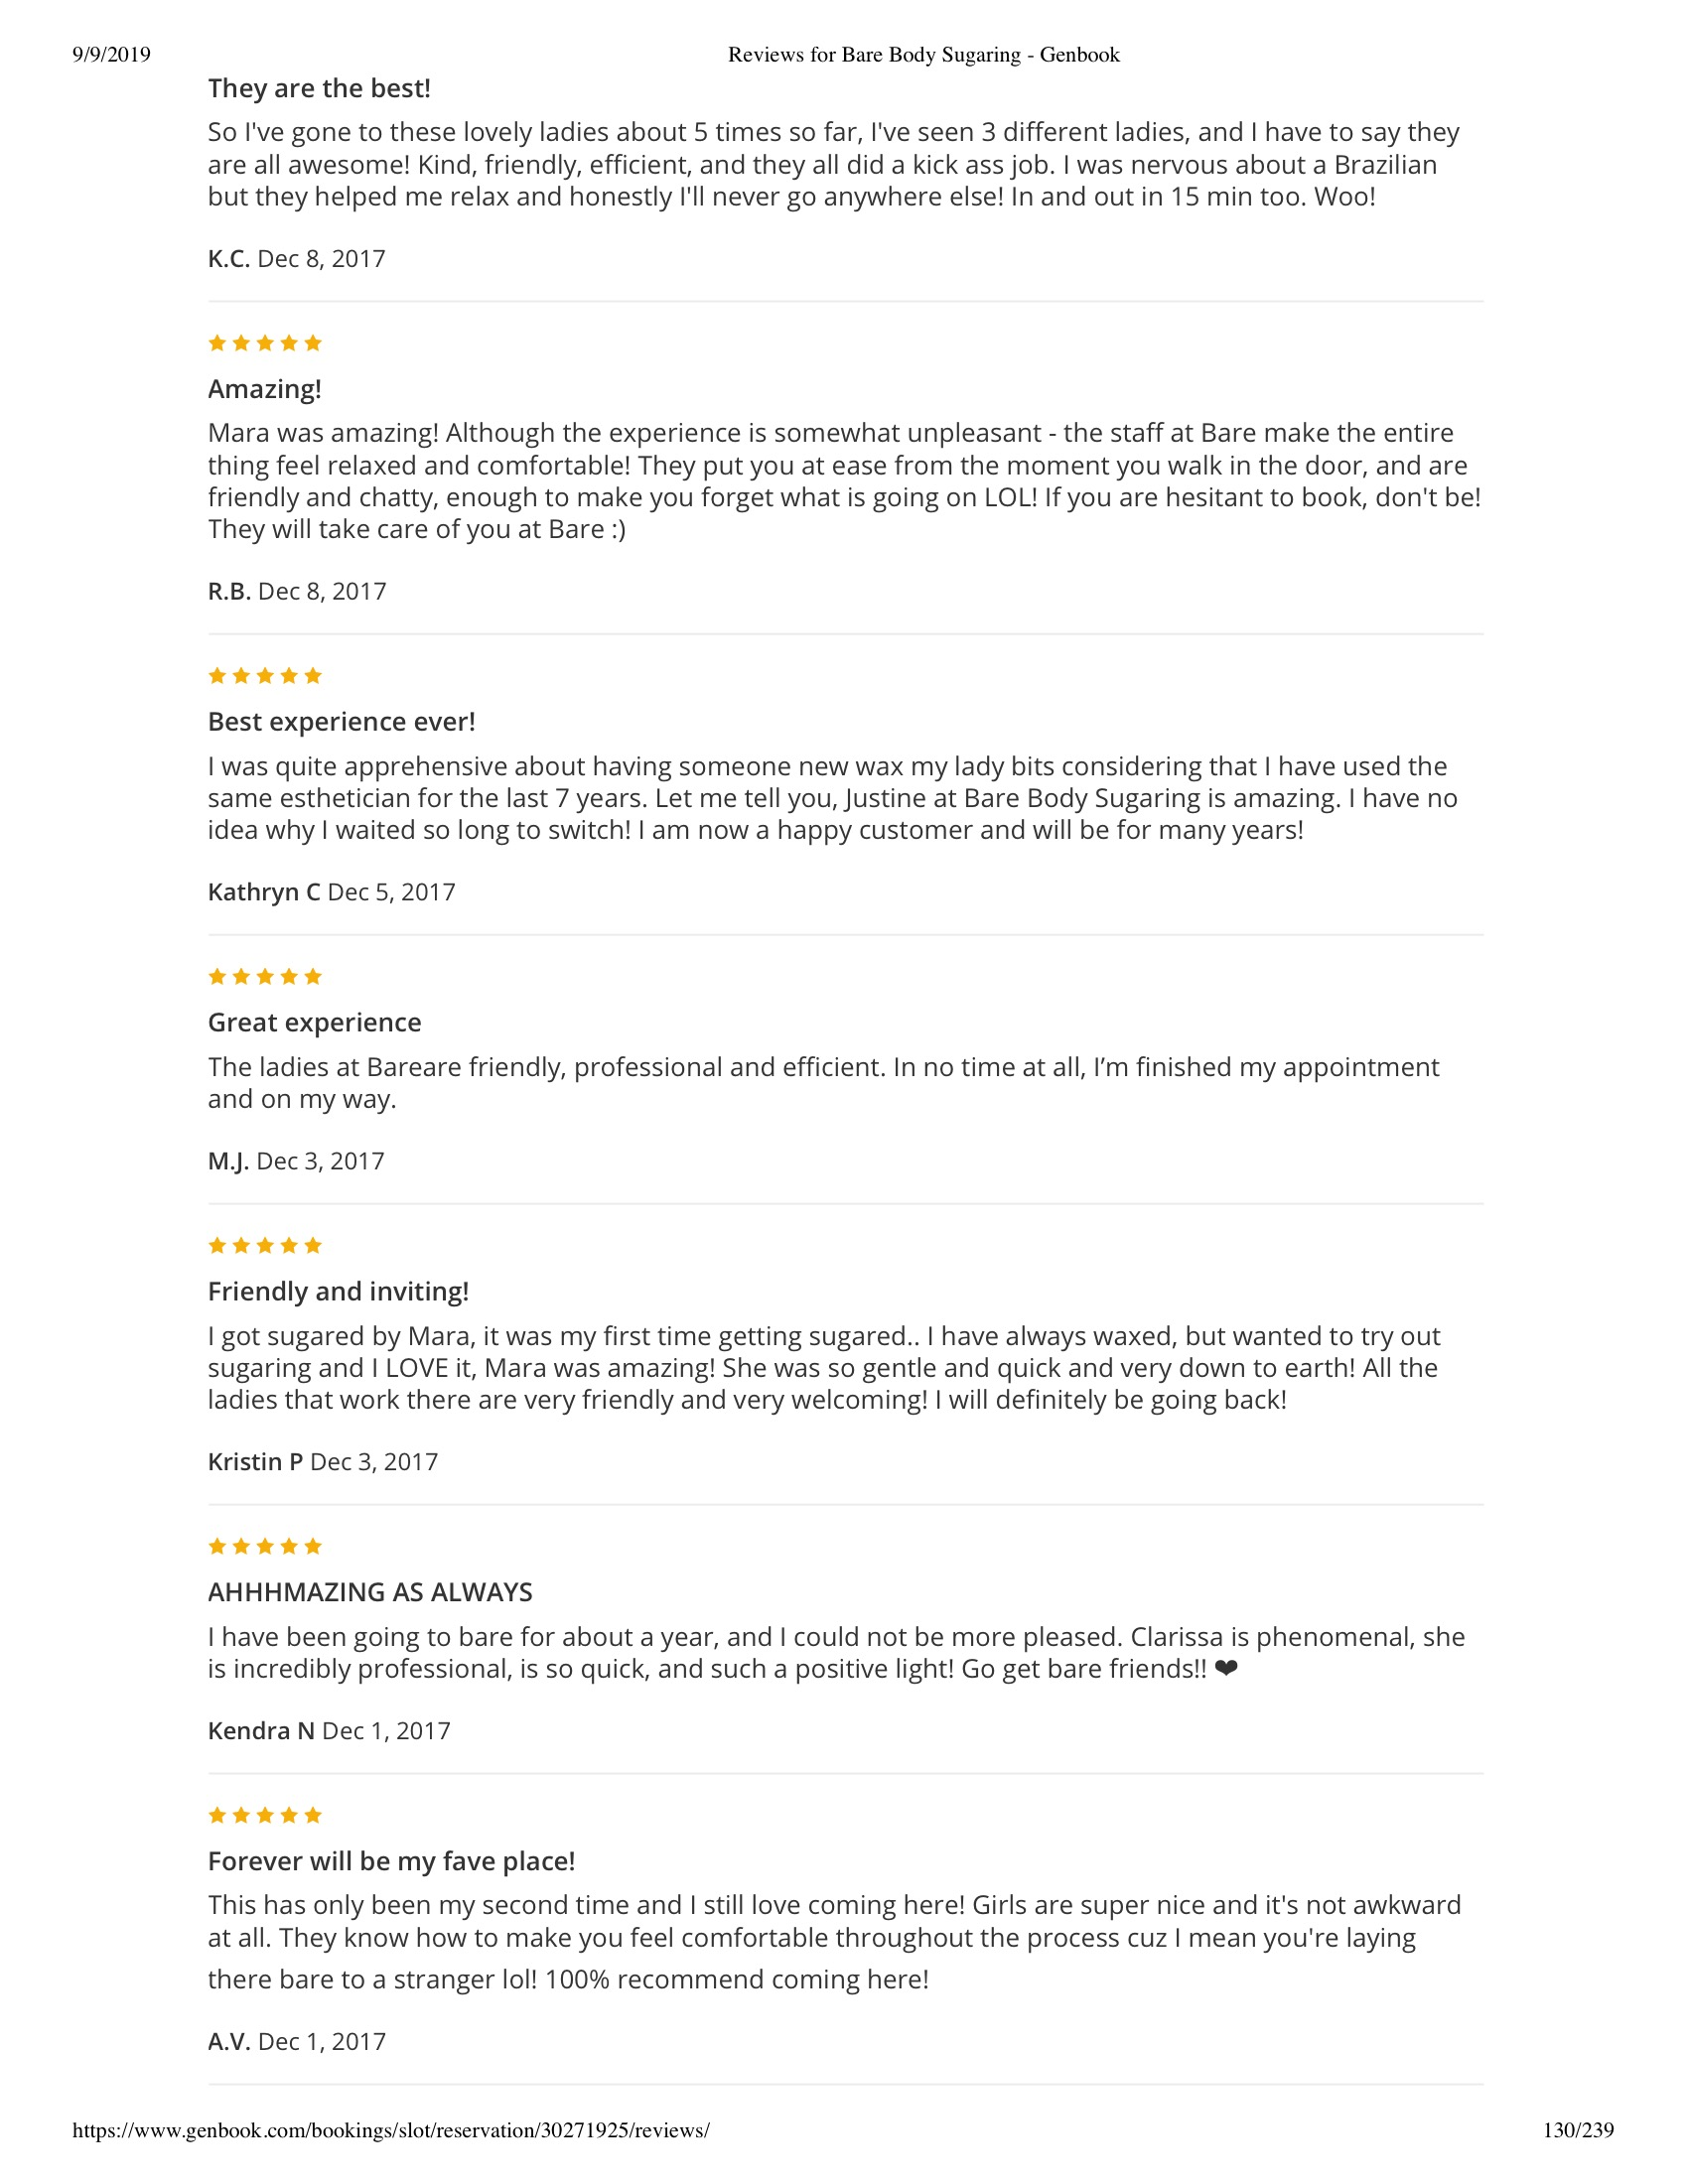 Reviews for Bare Body Sugaring - Genbook 130.jpeg